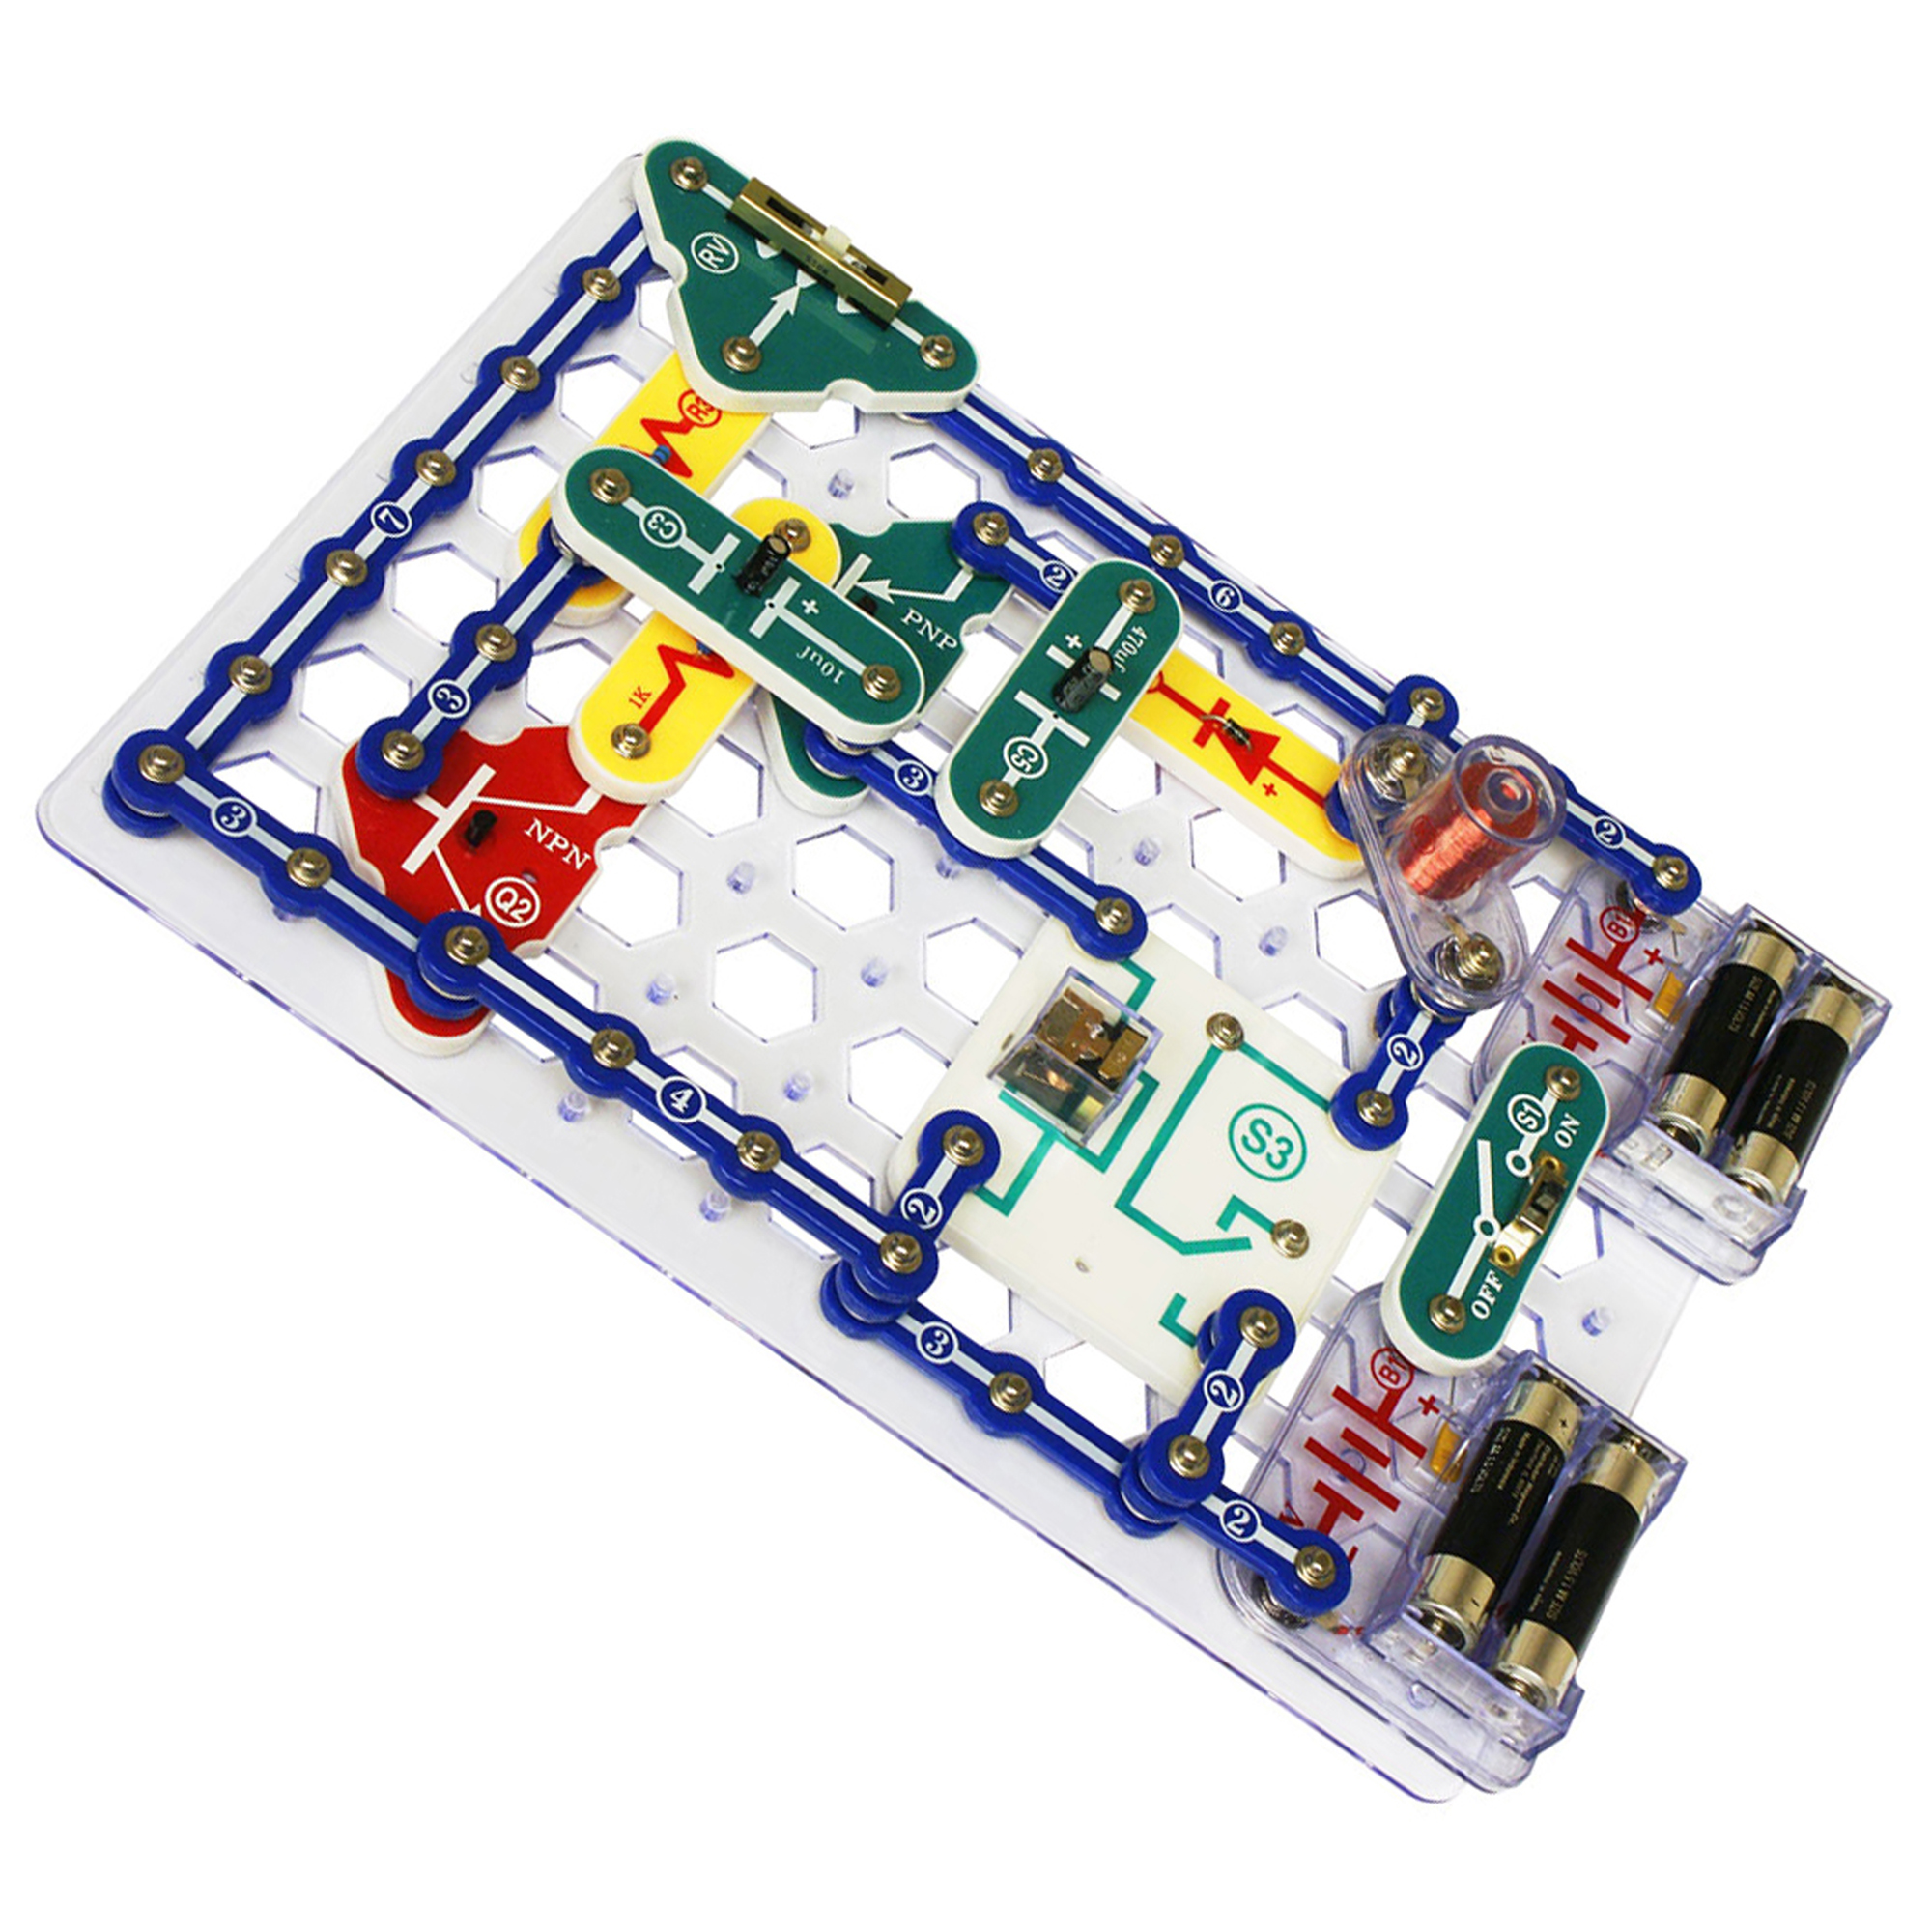 Snap Circuits 300in1 With Interface Elenco Stemfinity